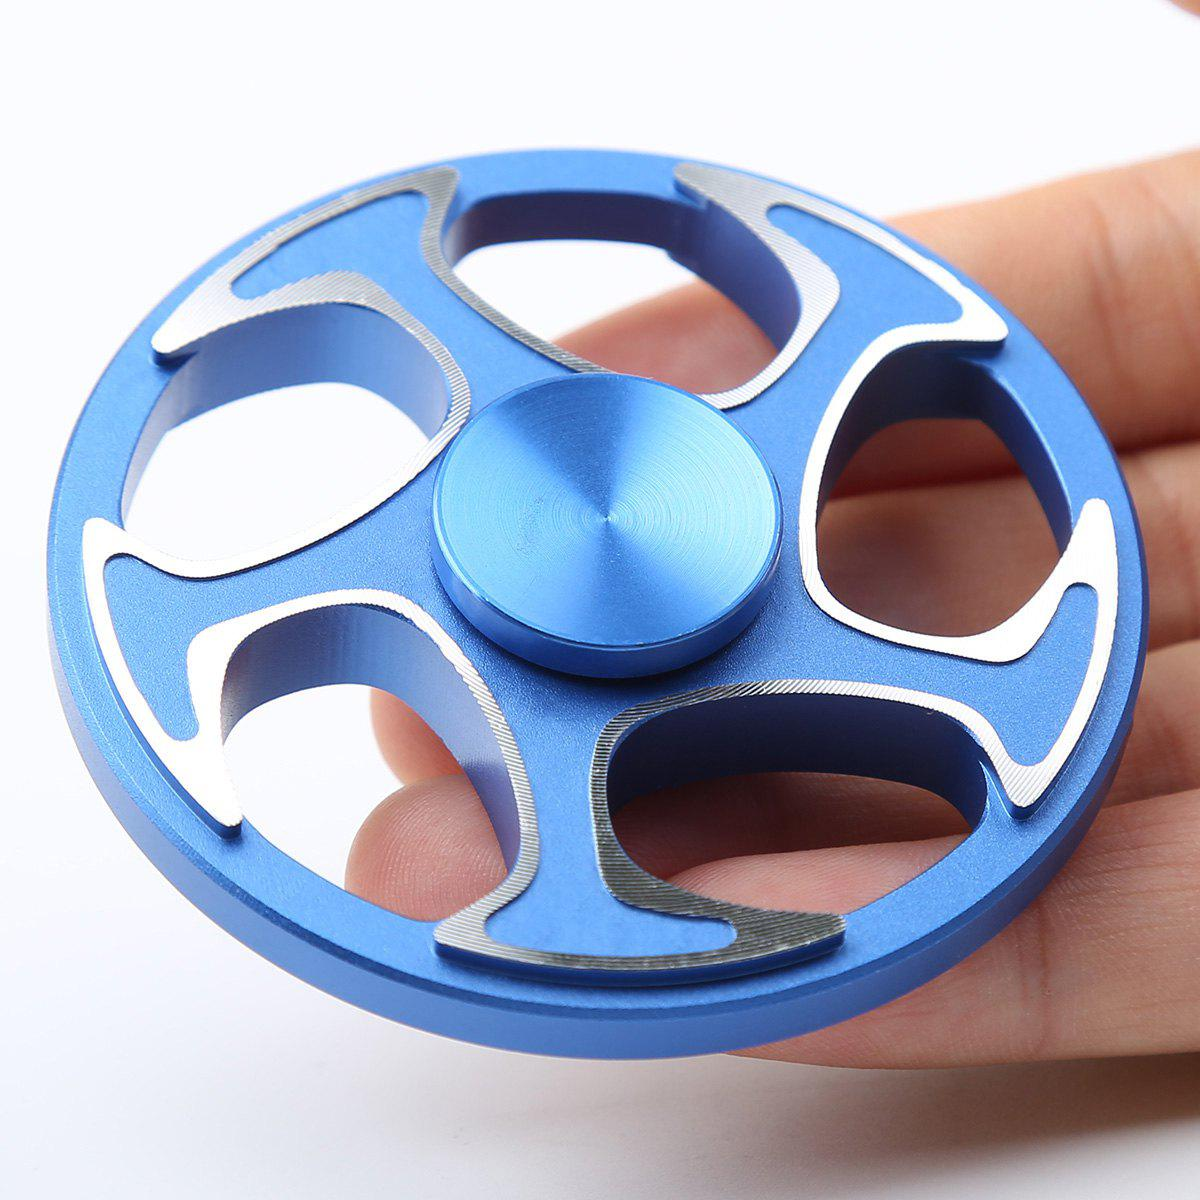 Wheel Aluminium Alloy Finger Gyro Hand Spinner - BLUE 6.3*6.3*1.5CM